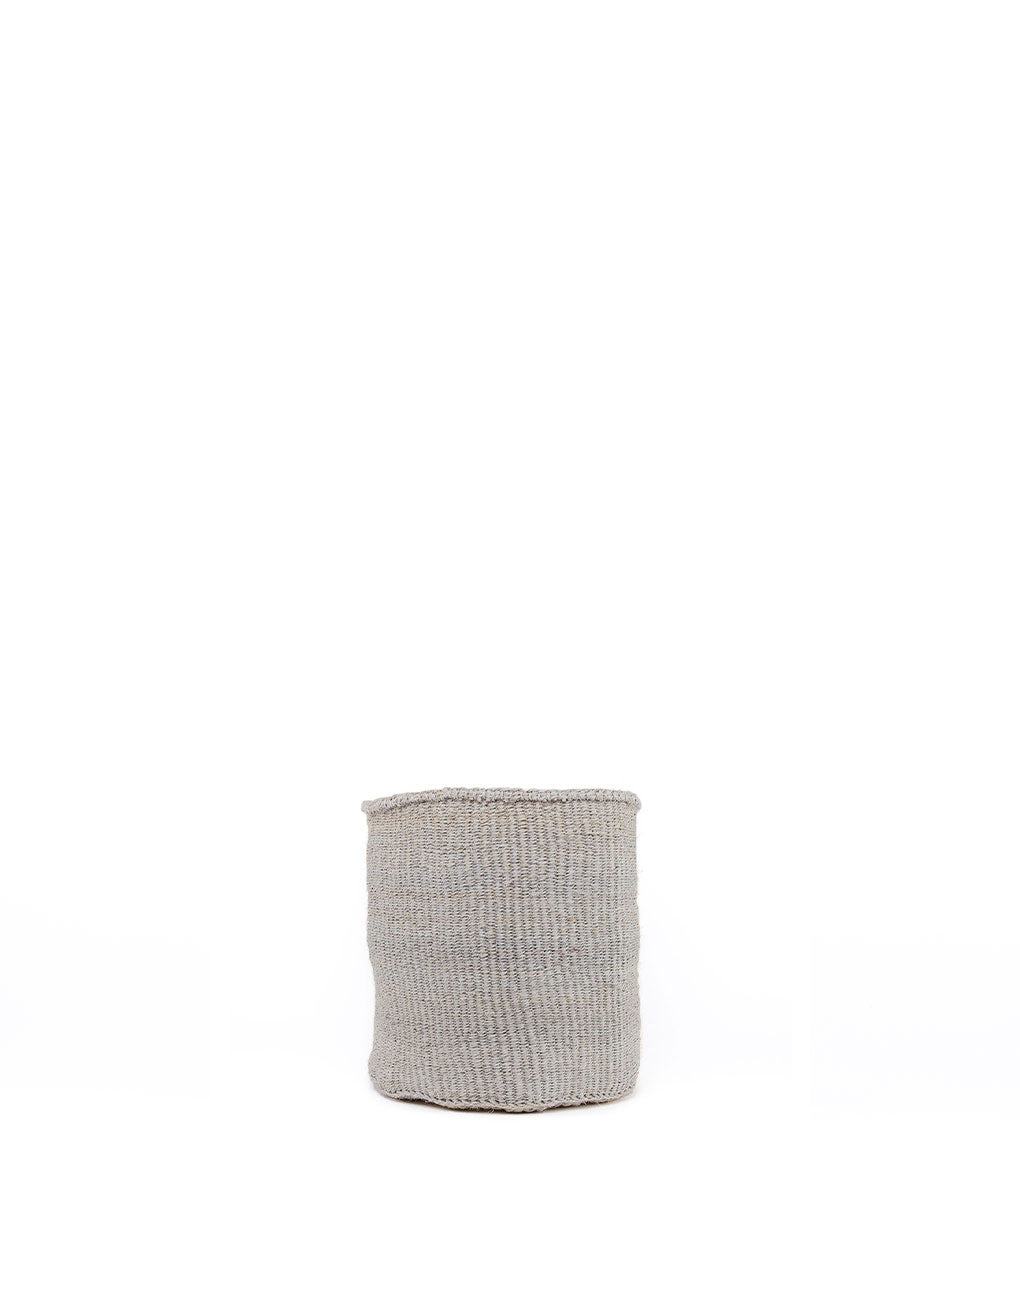 6in Solid Sisal Basket - Gray | The Little Market